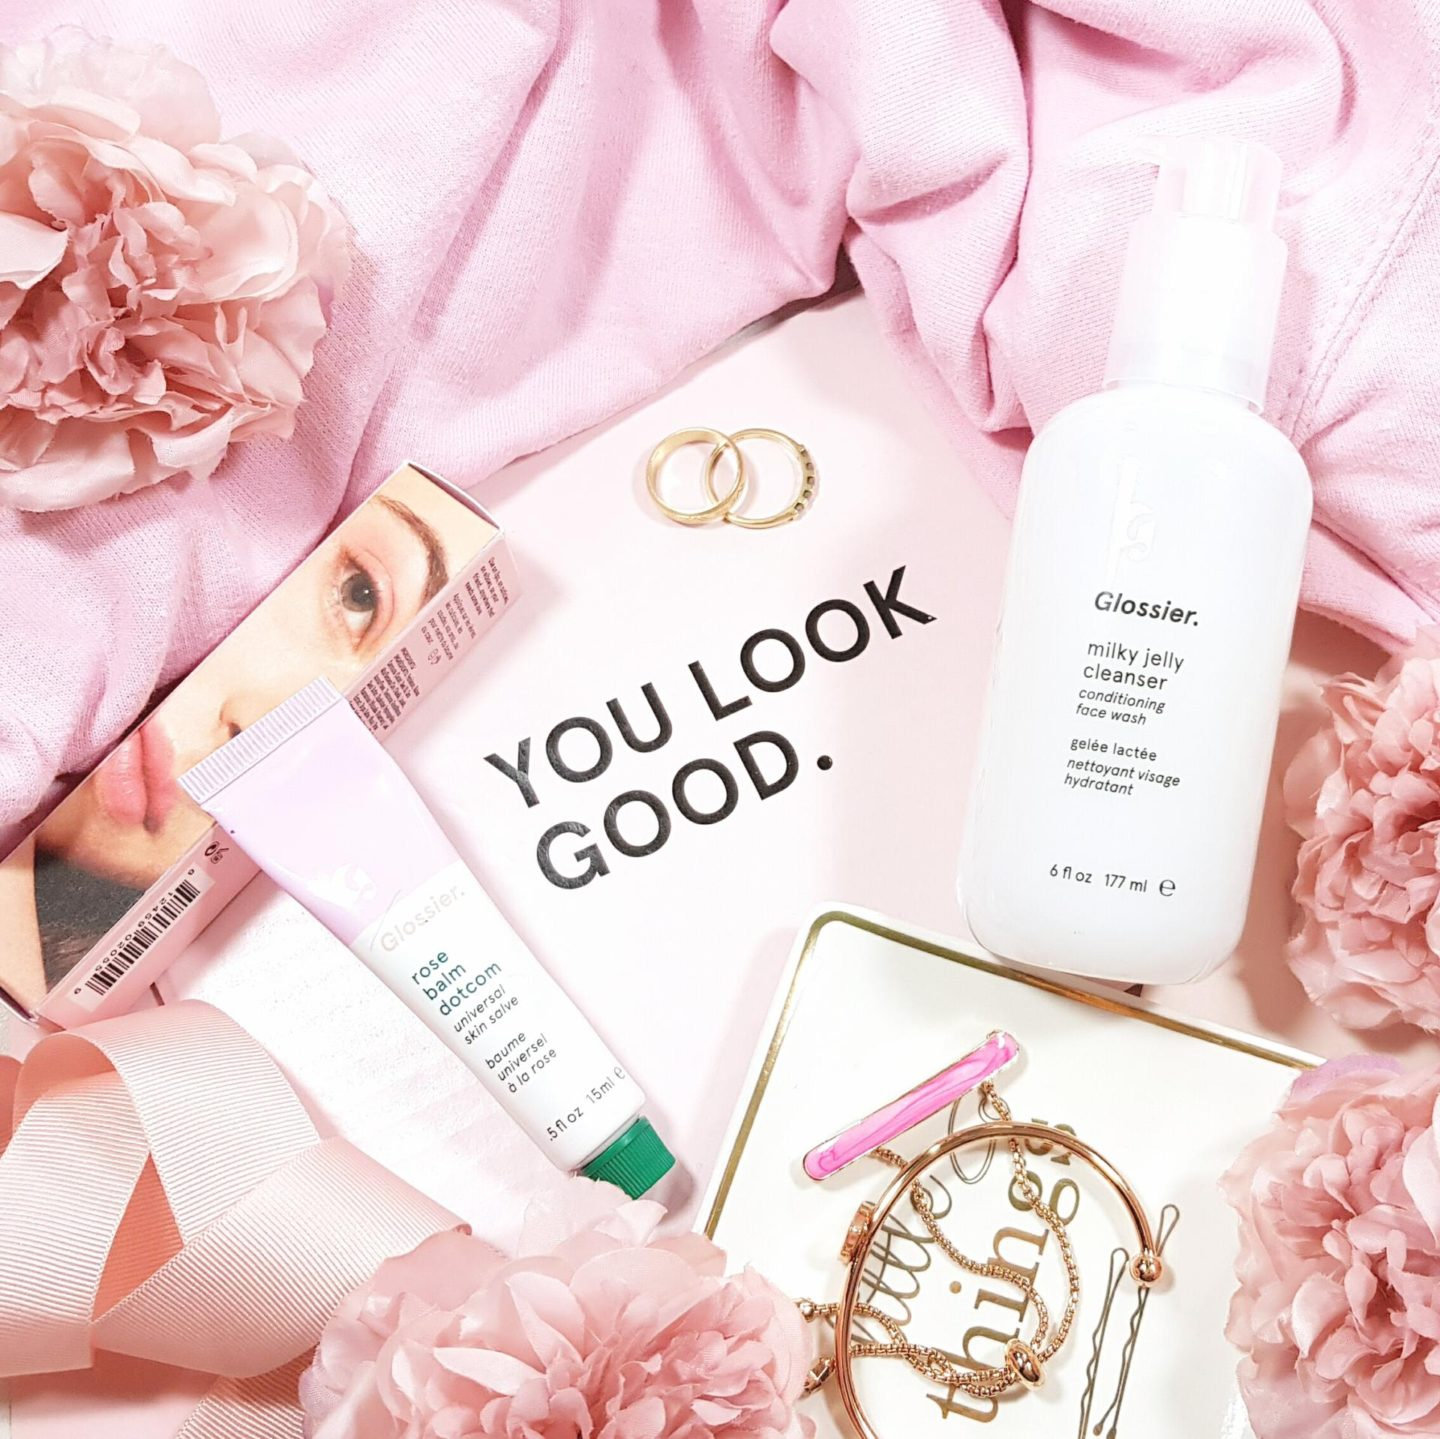 Glossier: The Products You Should Be Trying